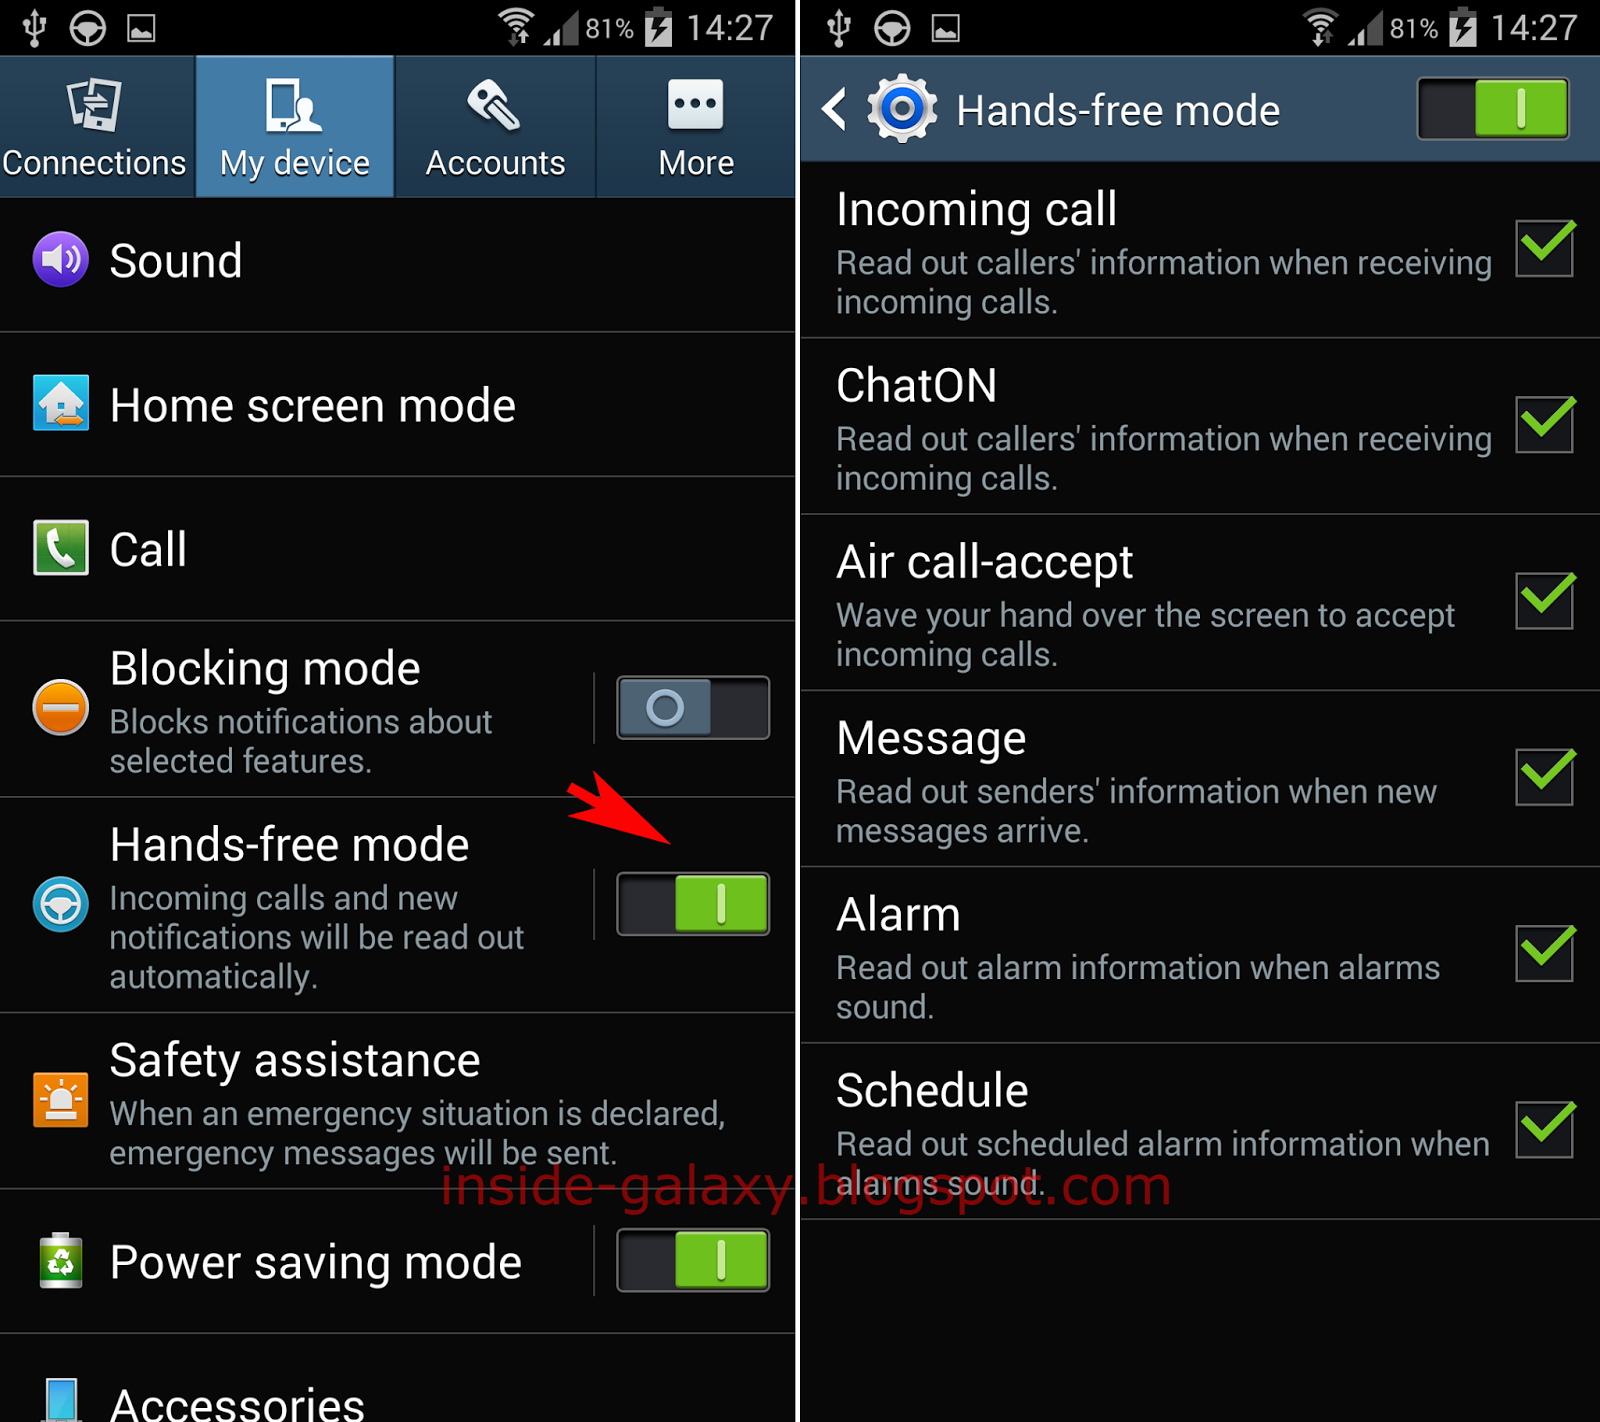 Inside Galaxy Samsung Galaxy S4 How To Enable Disable And Configure Hands Free Mode In Android 4 4 Kitkat